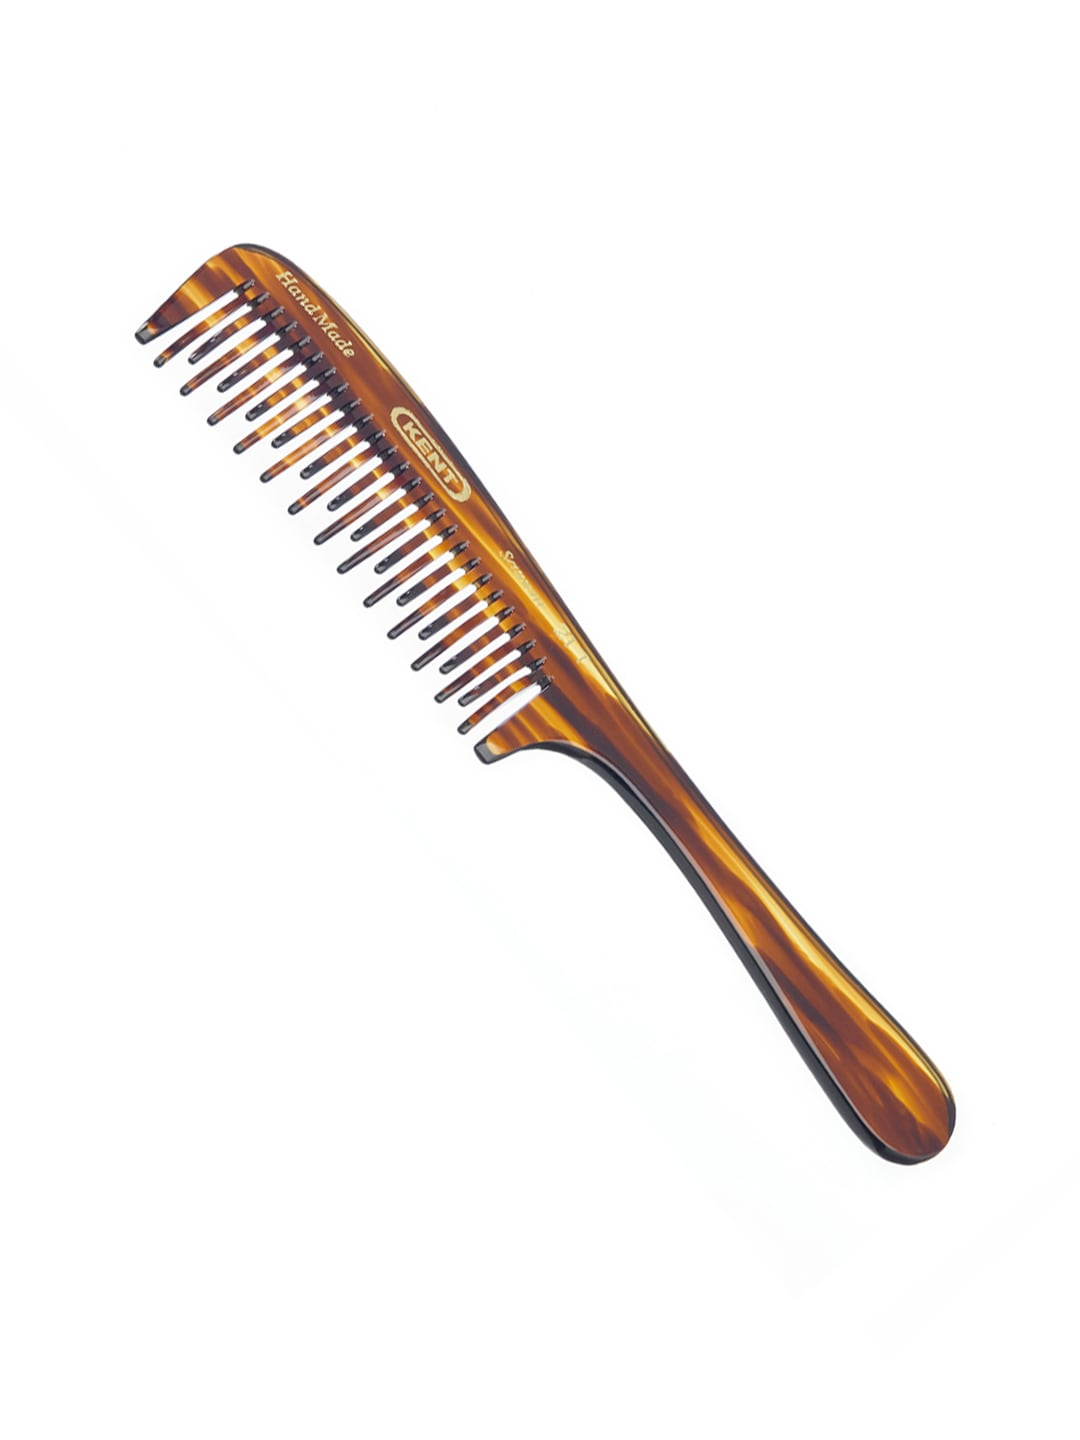 Kent Unisex Brown Handcrafted Comb 21T image